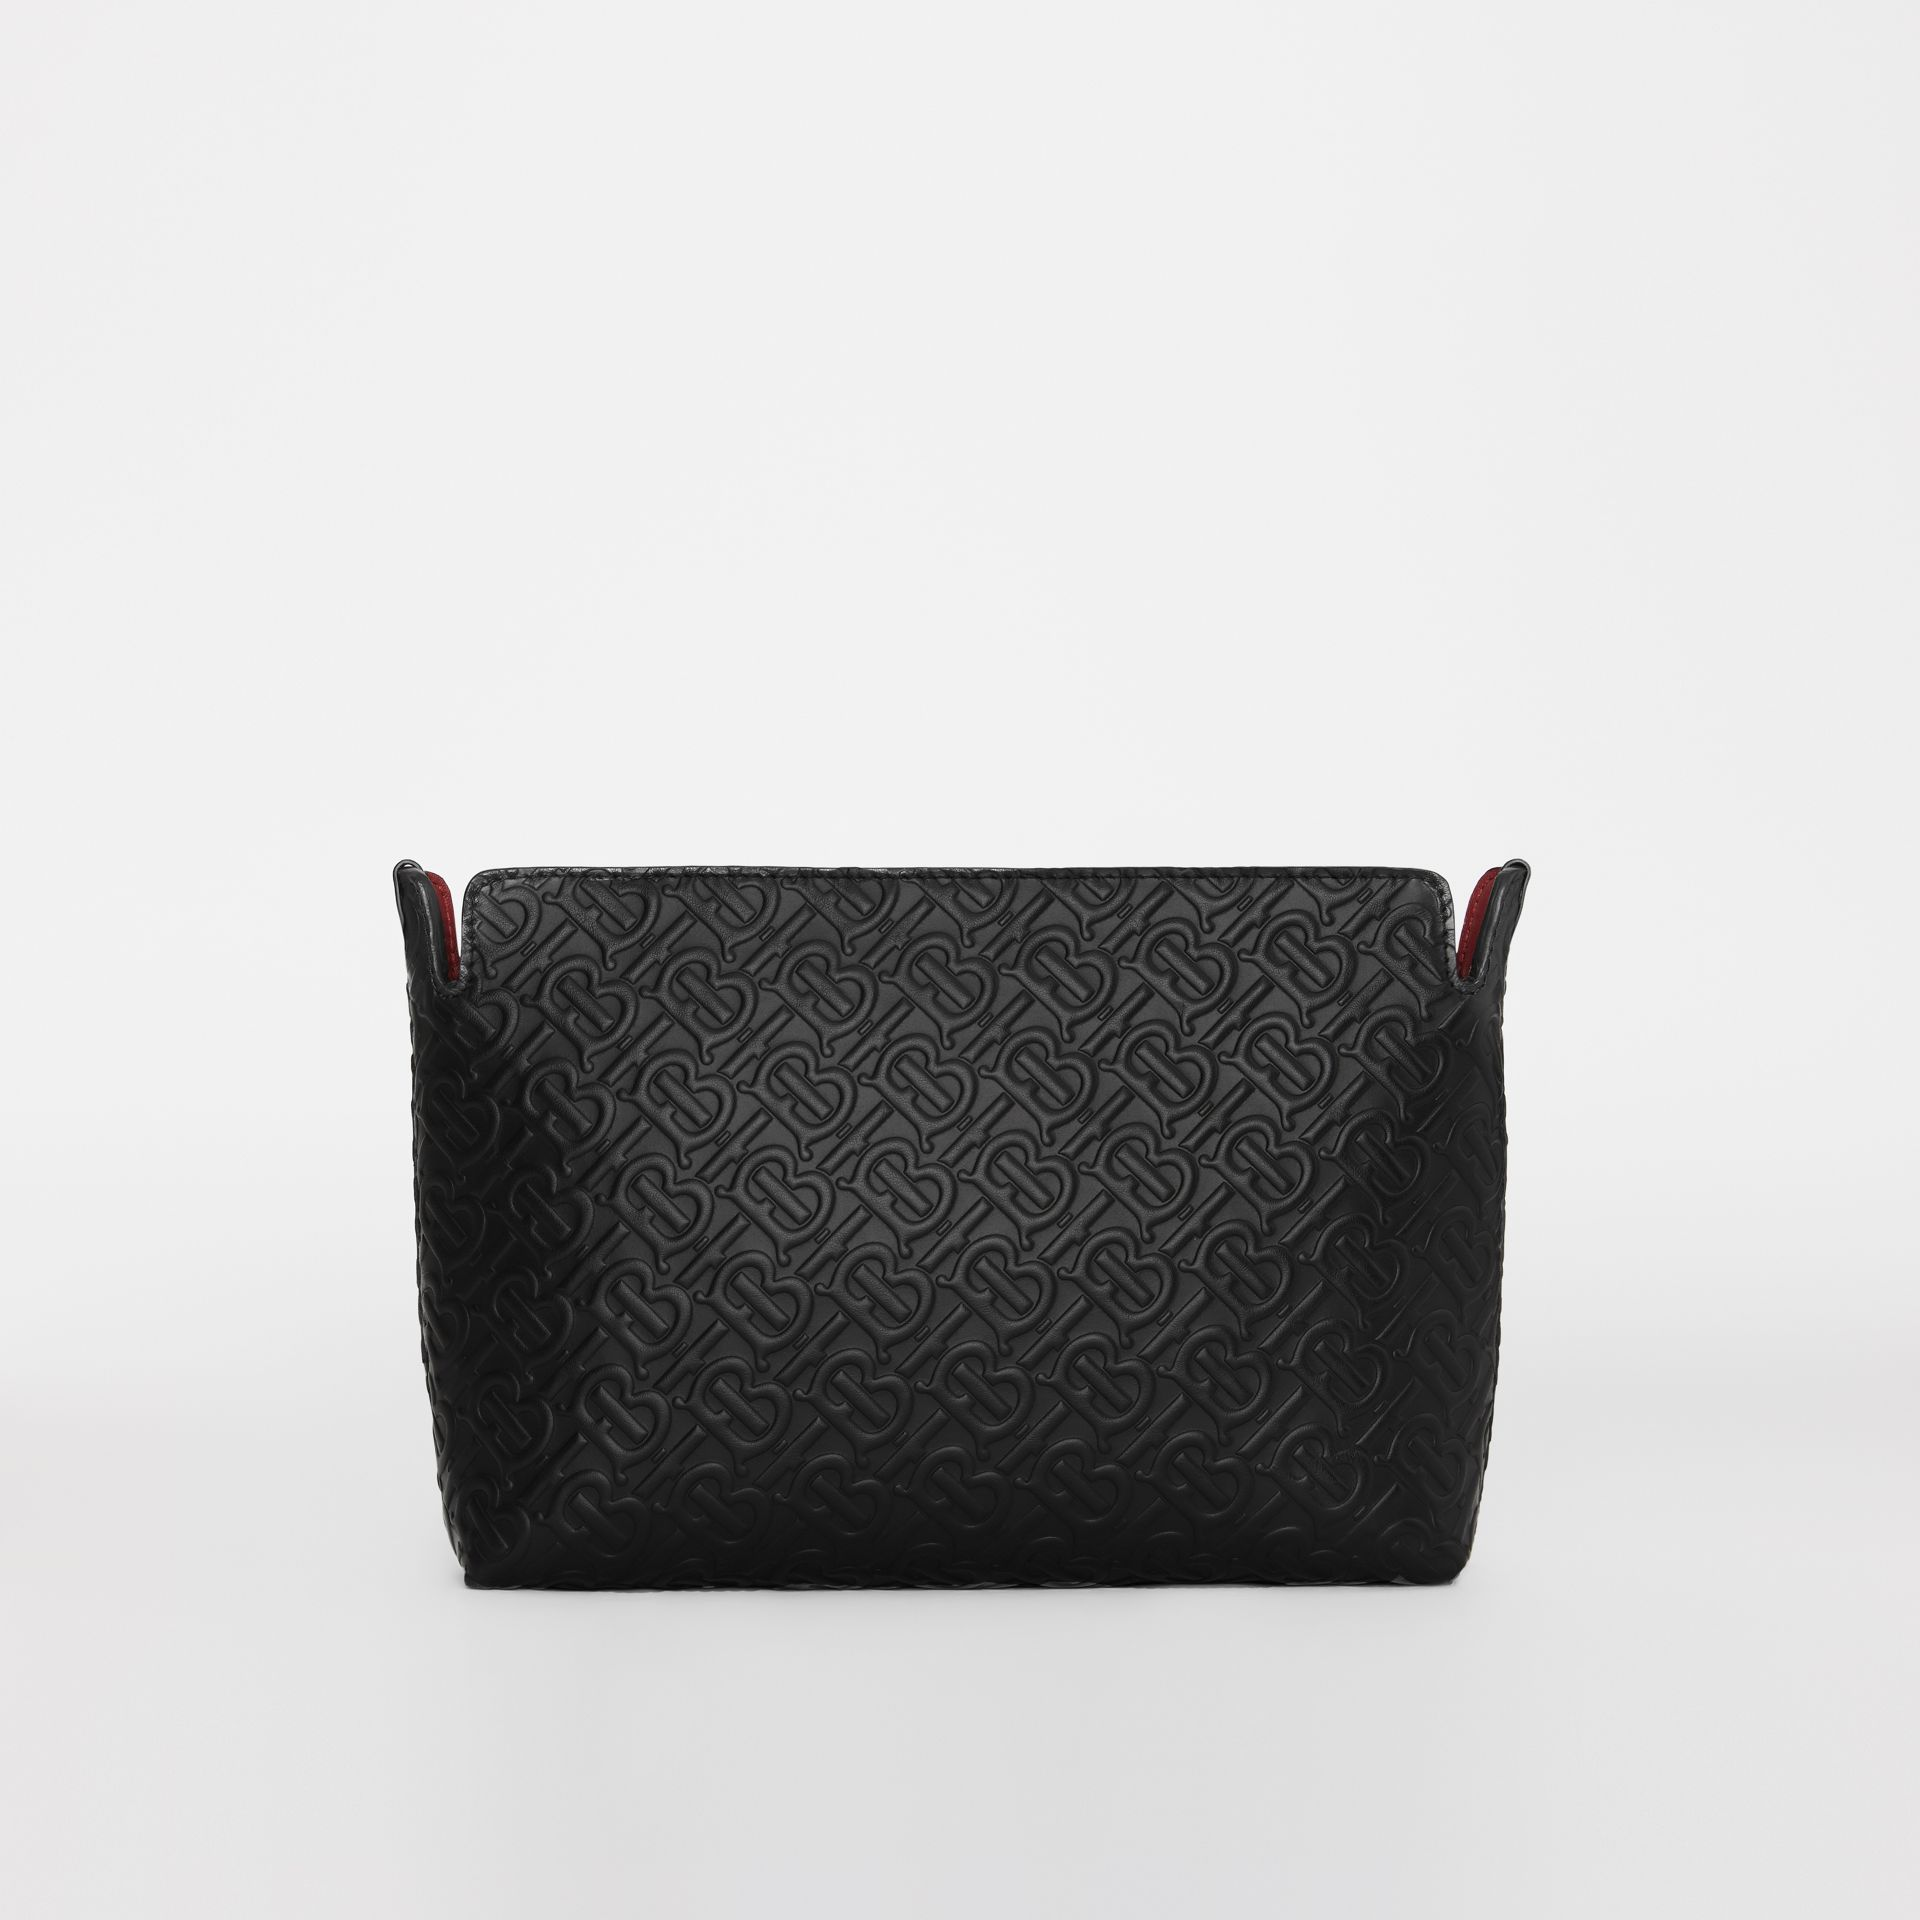 Medium Monogram Leather Clutch in Black - Women | Burberry United States - gallery image 6